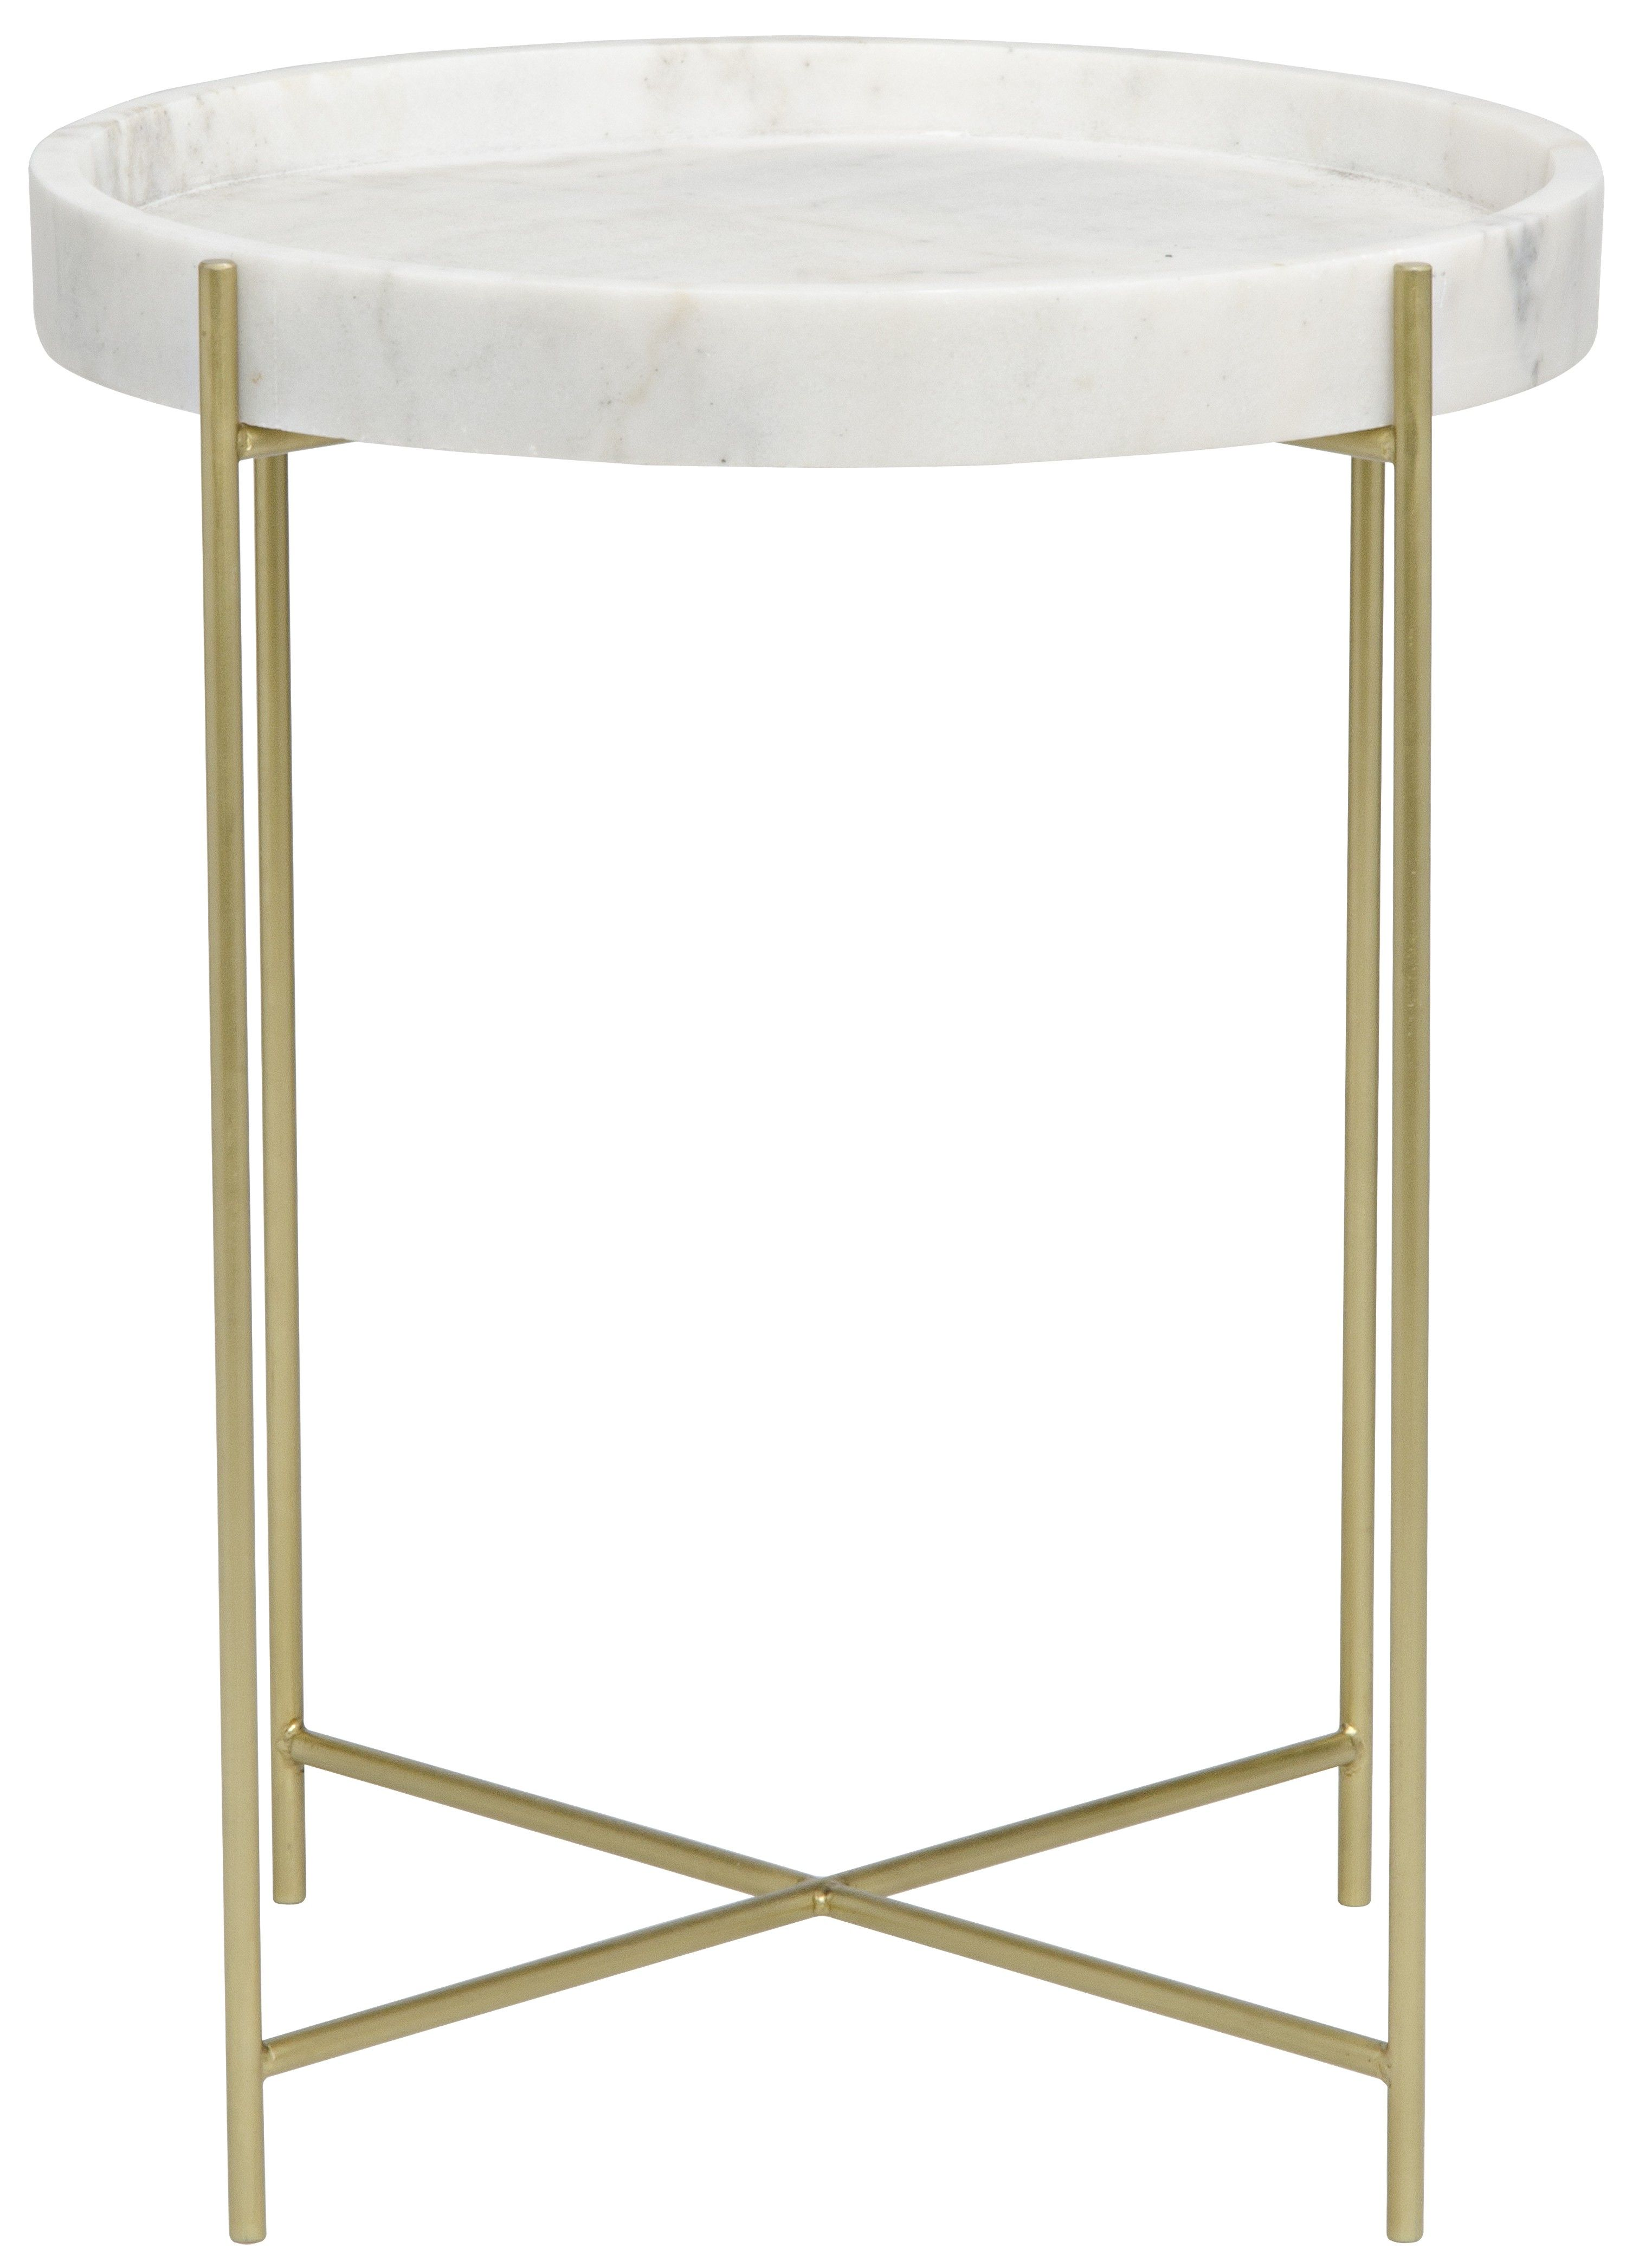 Thin Gold Bars Meet Sleek White Stone In This Space Saving And Eye Catching Design So Chic You Ll Be For Side Table Contemporary Side Tables Brass Tray Table [ 4185 x 3000 Pixel ]